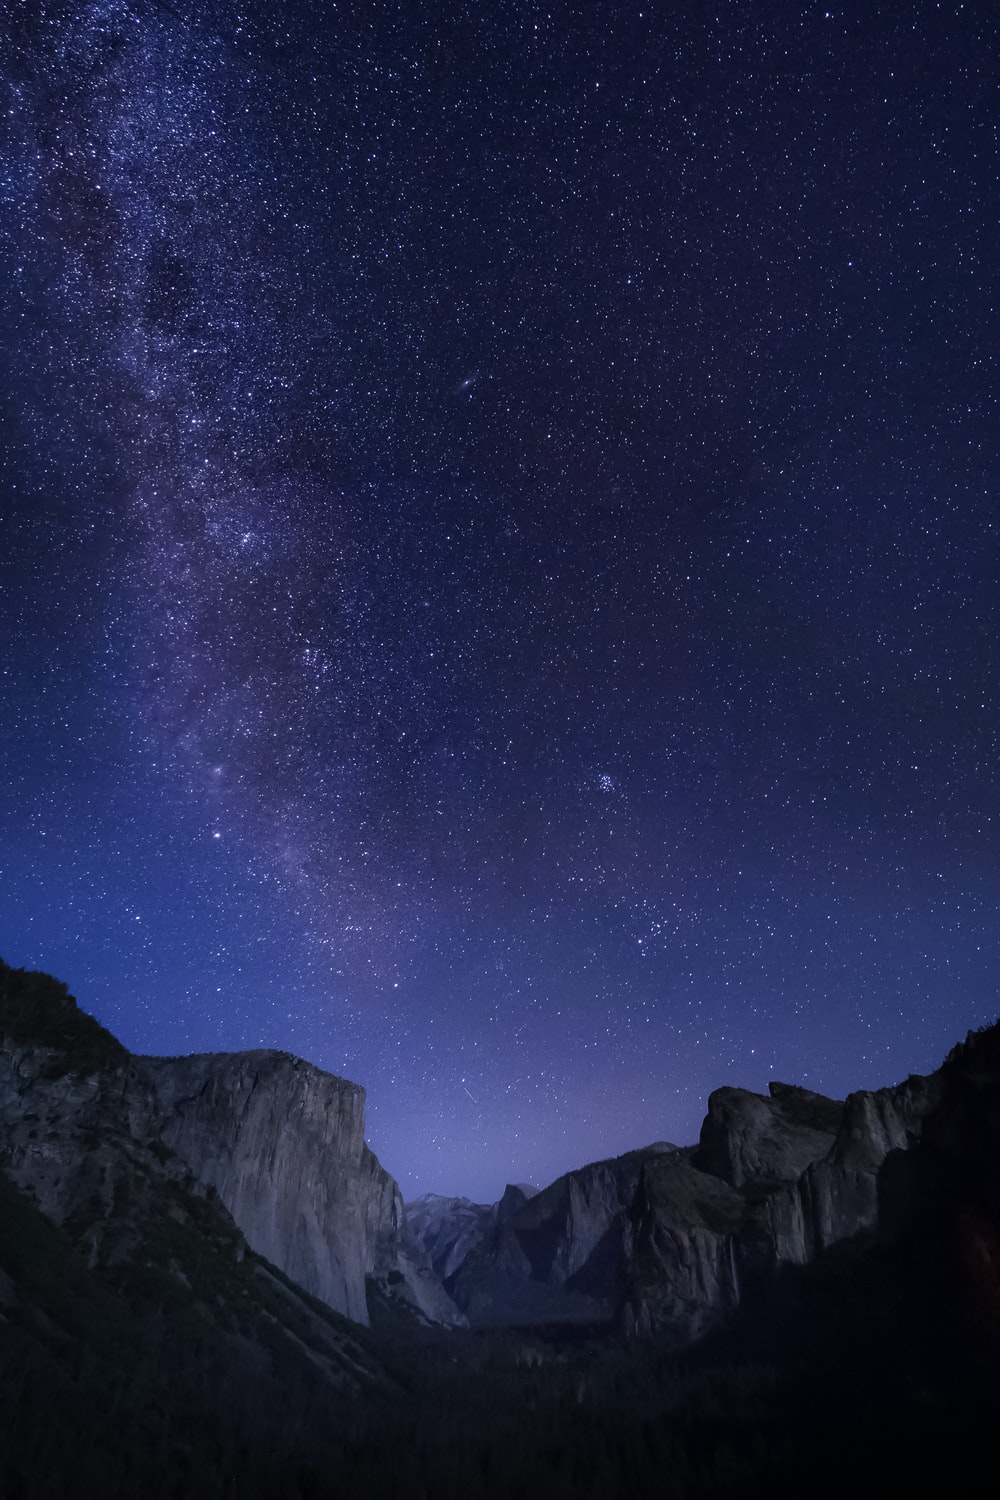 photograph of milky way